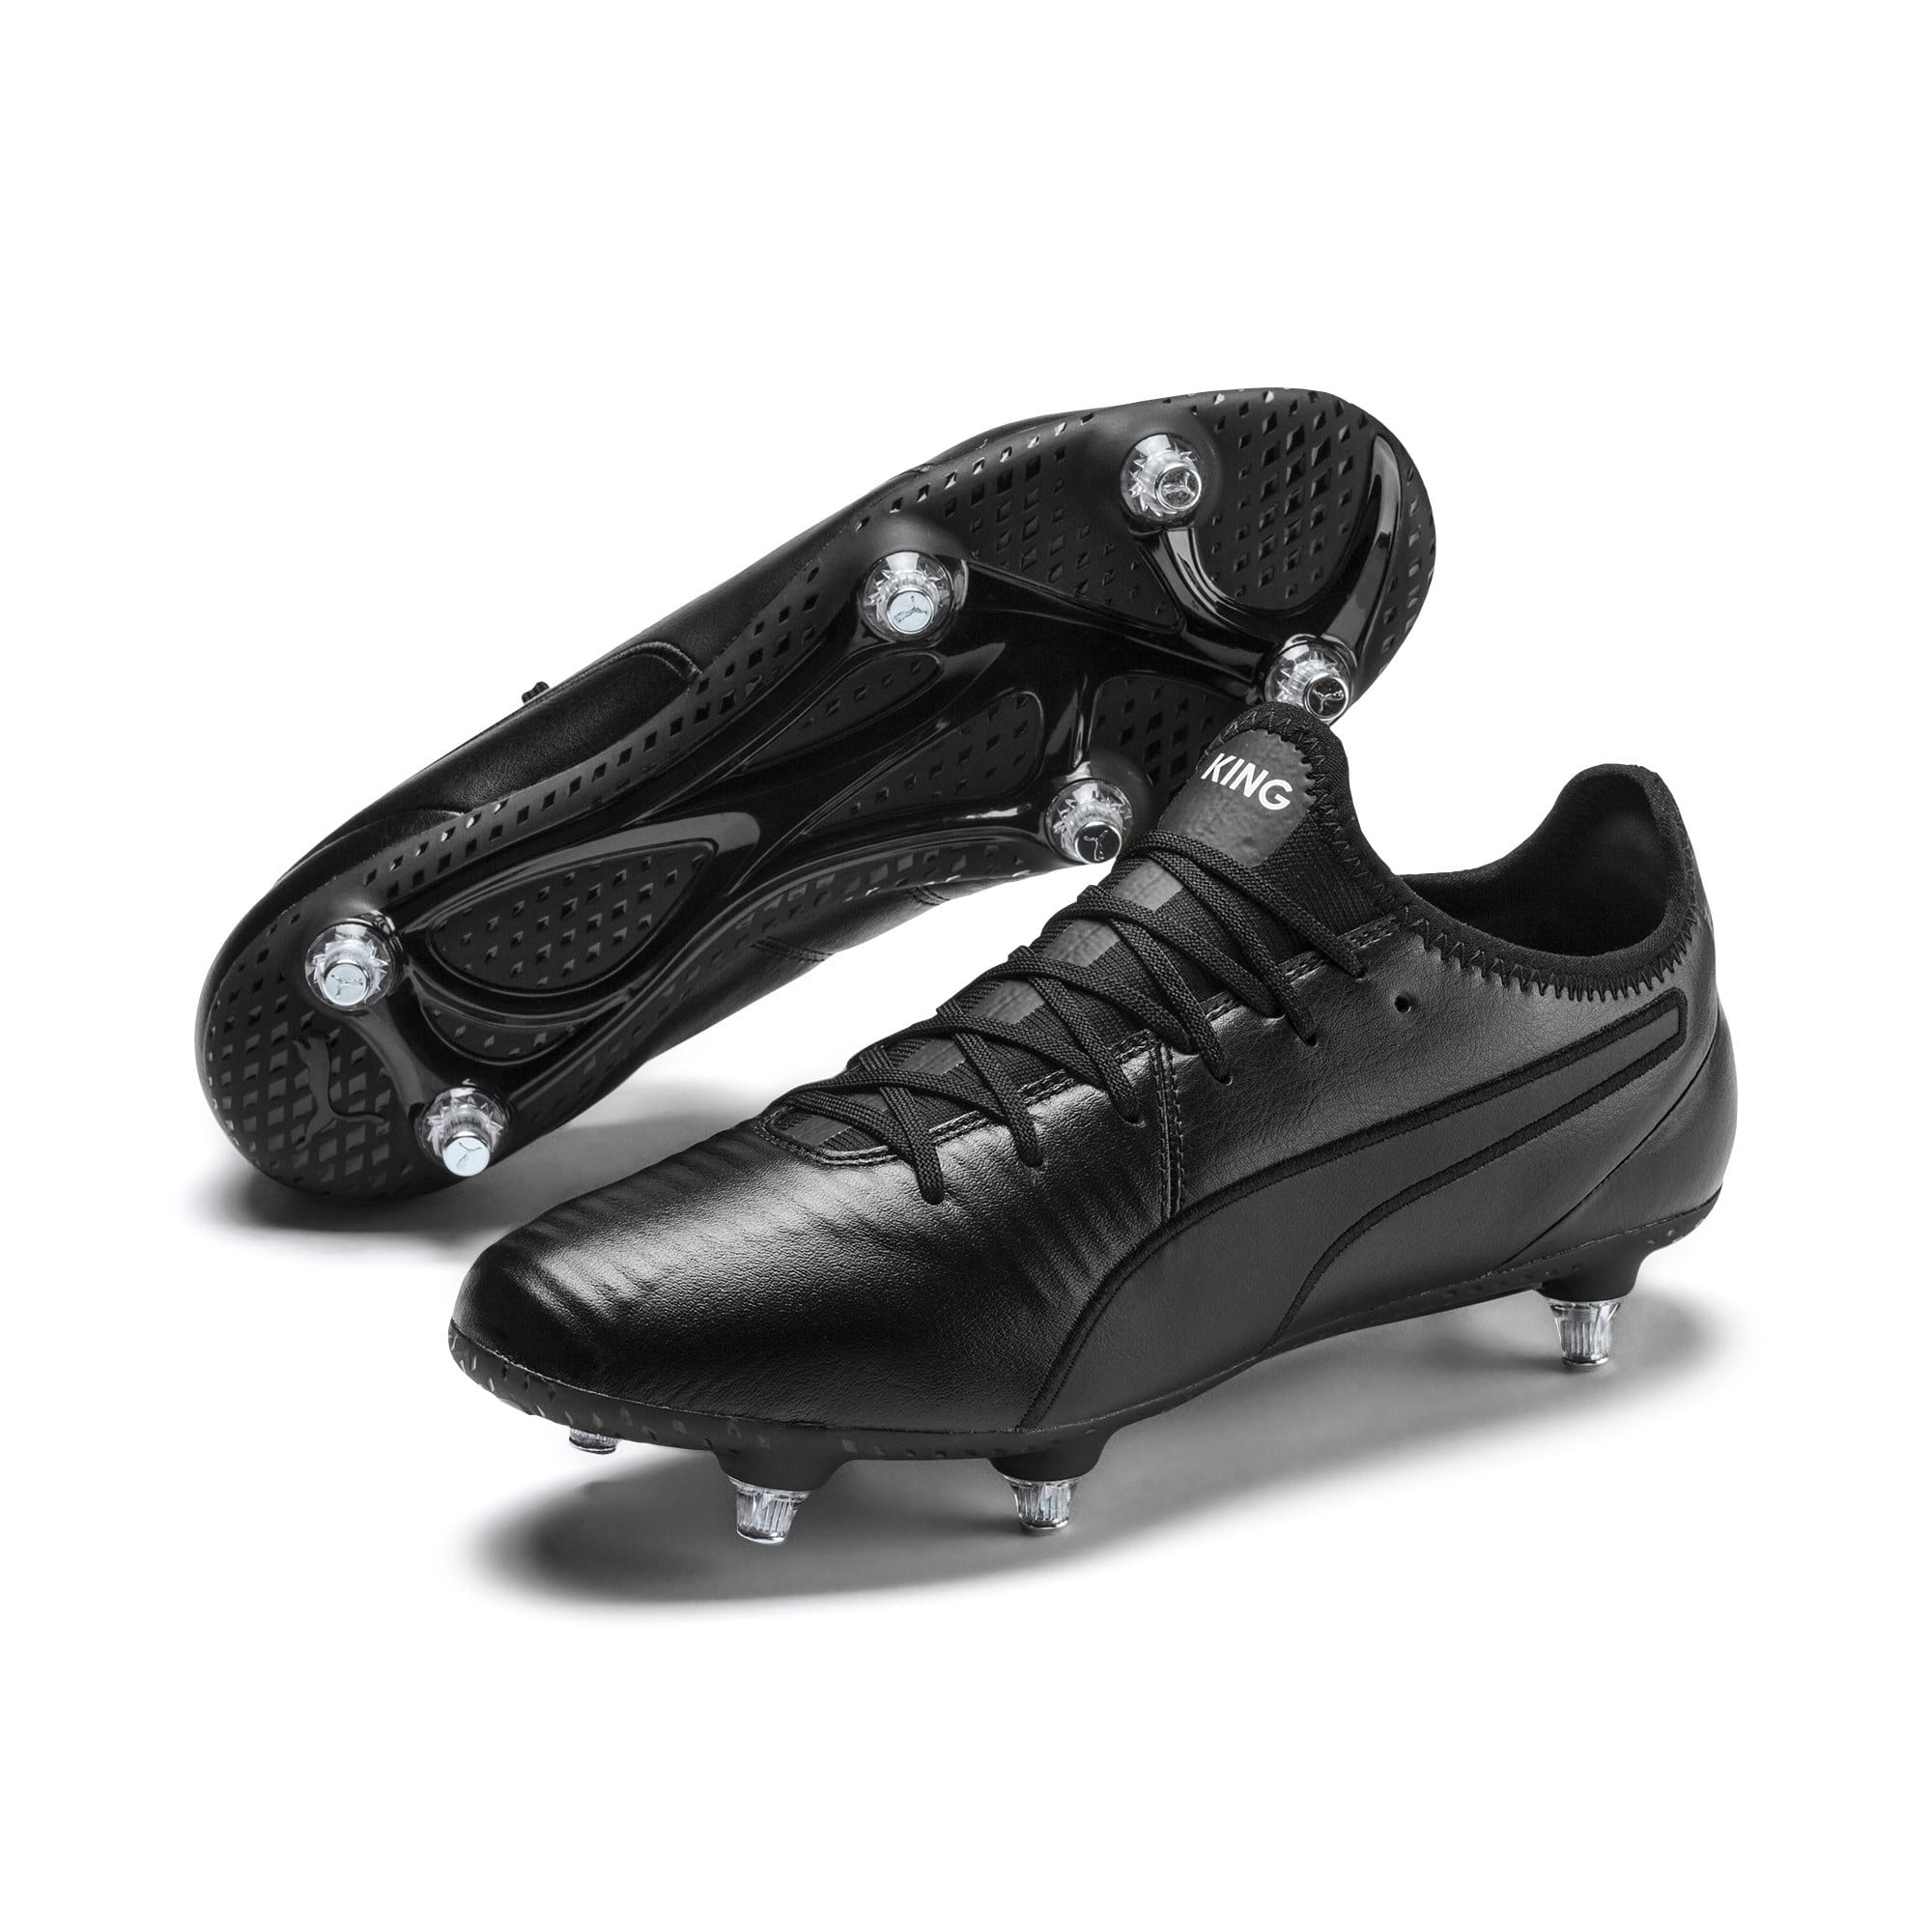 Thumbnail 3 of KING SG Men's Football Boots, Puma Black-Puma White, medium